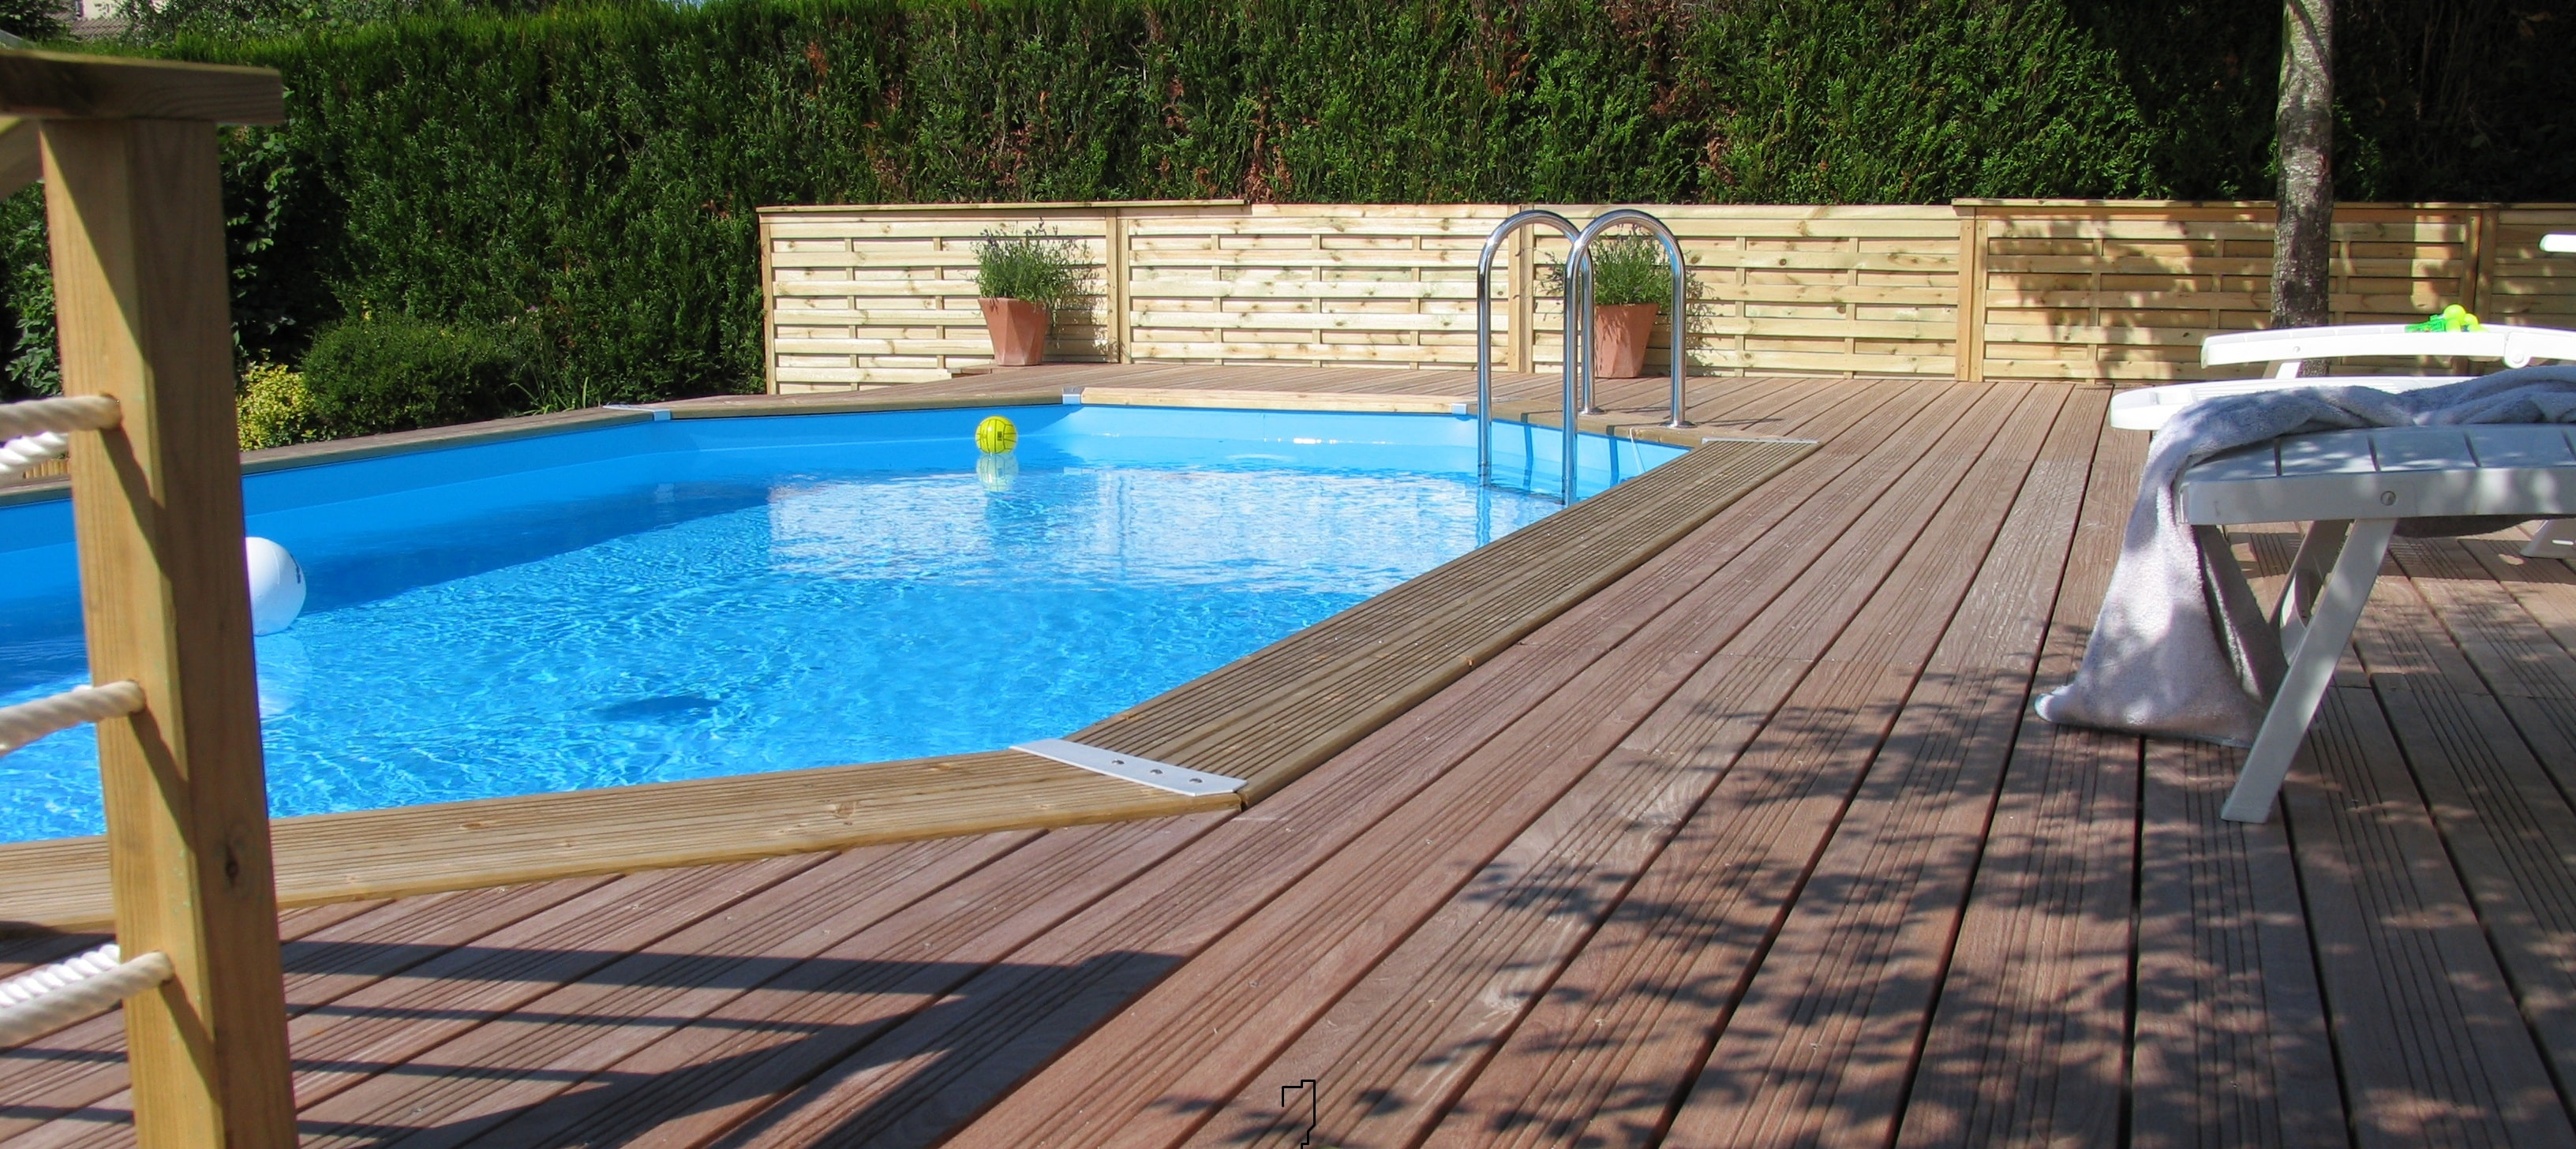 Piscine en bois comment l 39 installer blog jardin for Amenager sa piscine